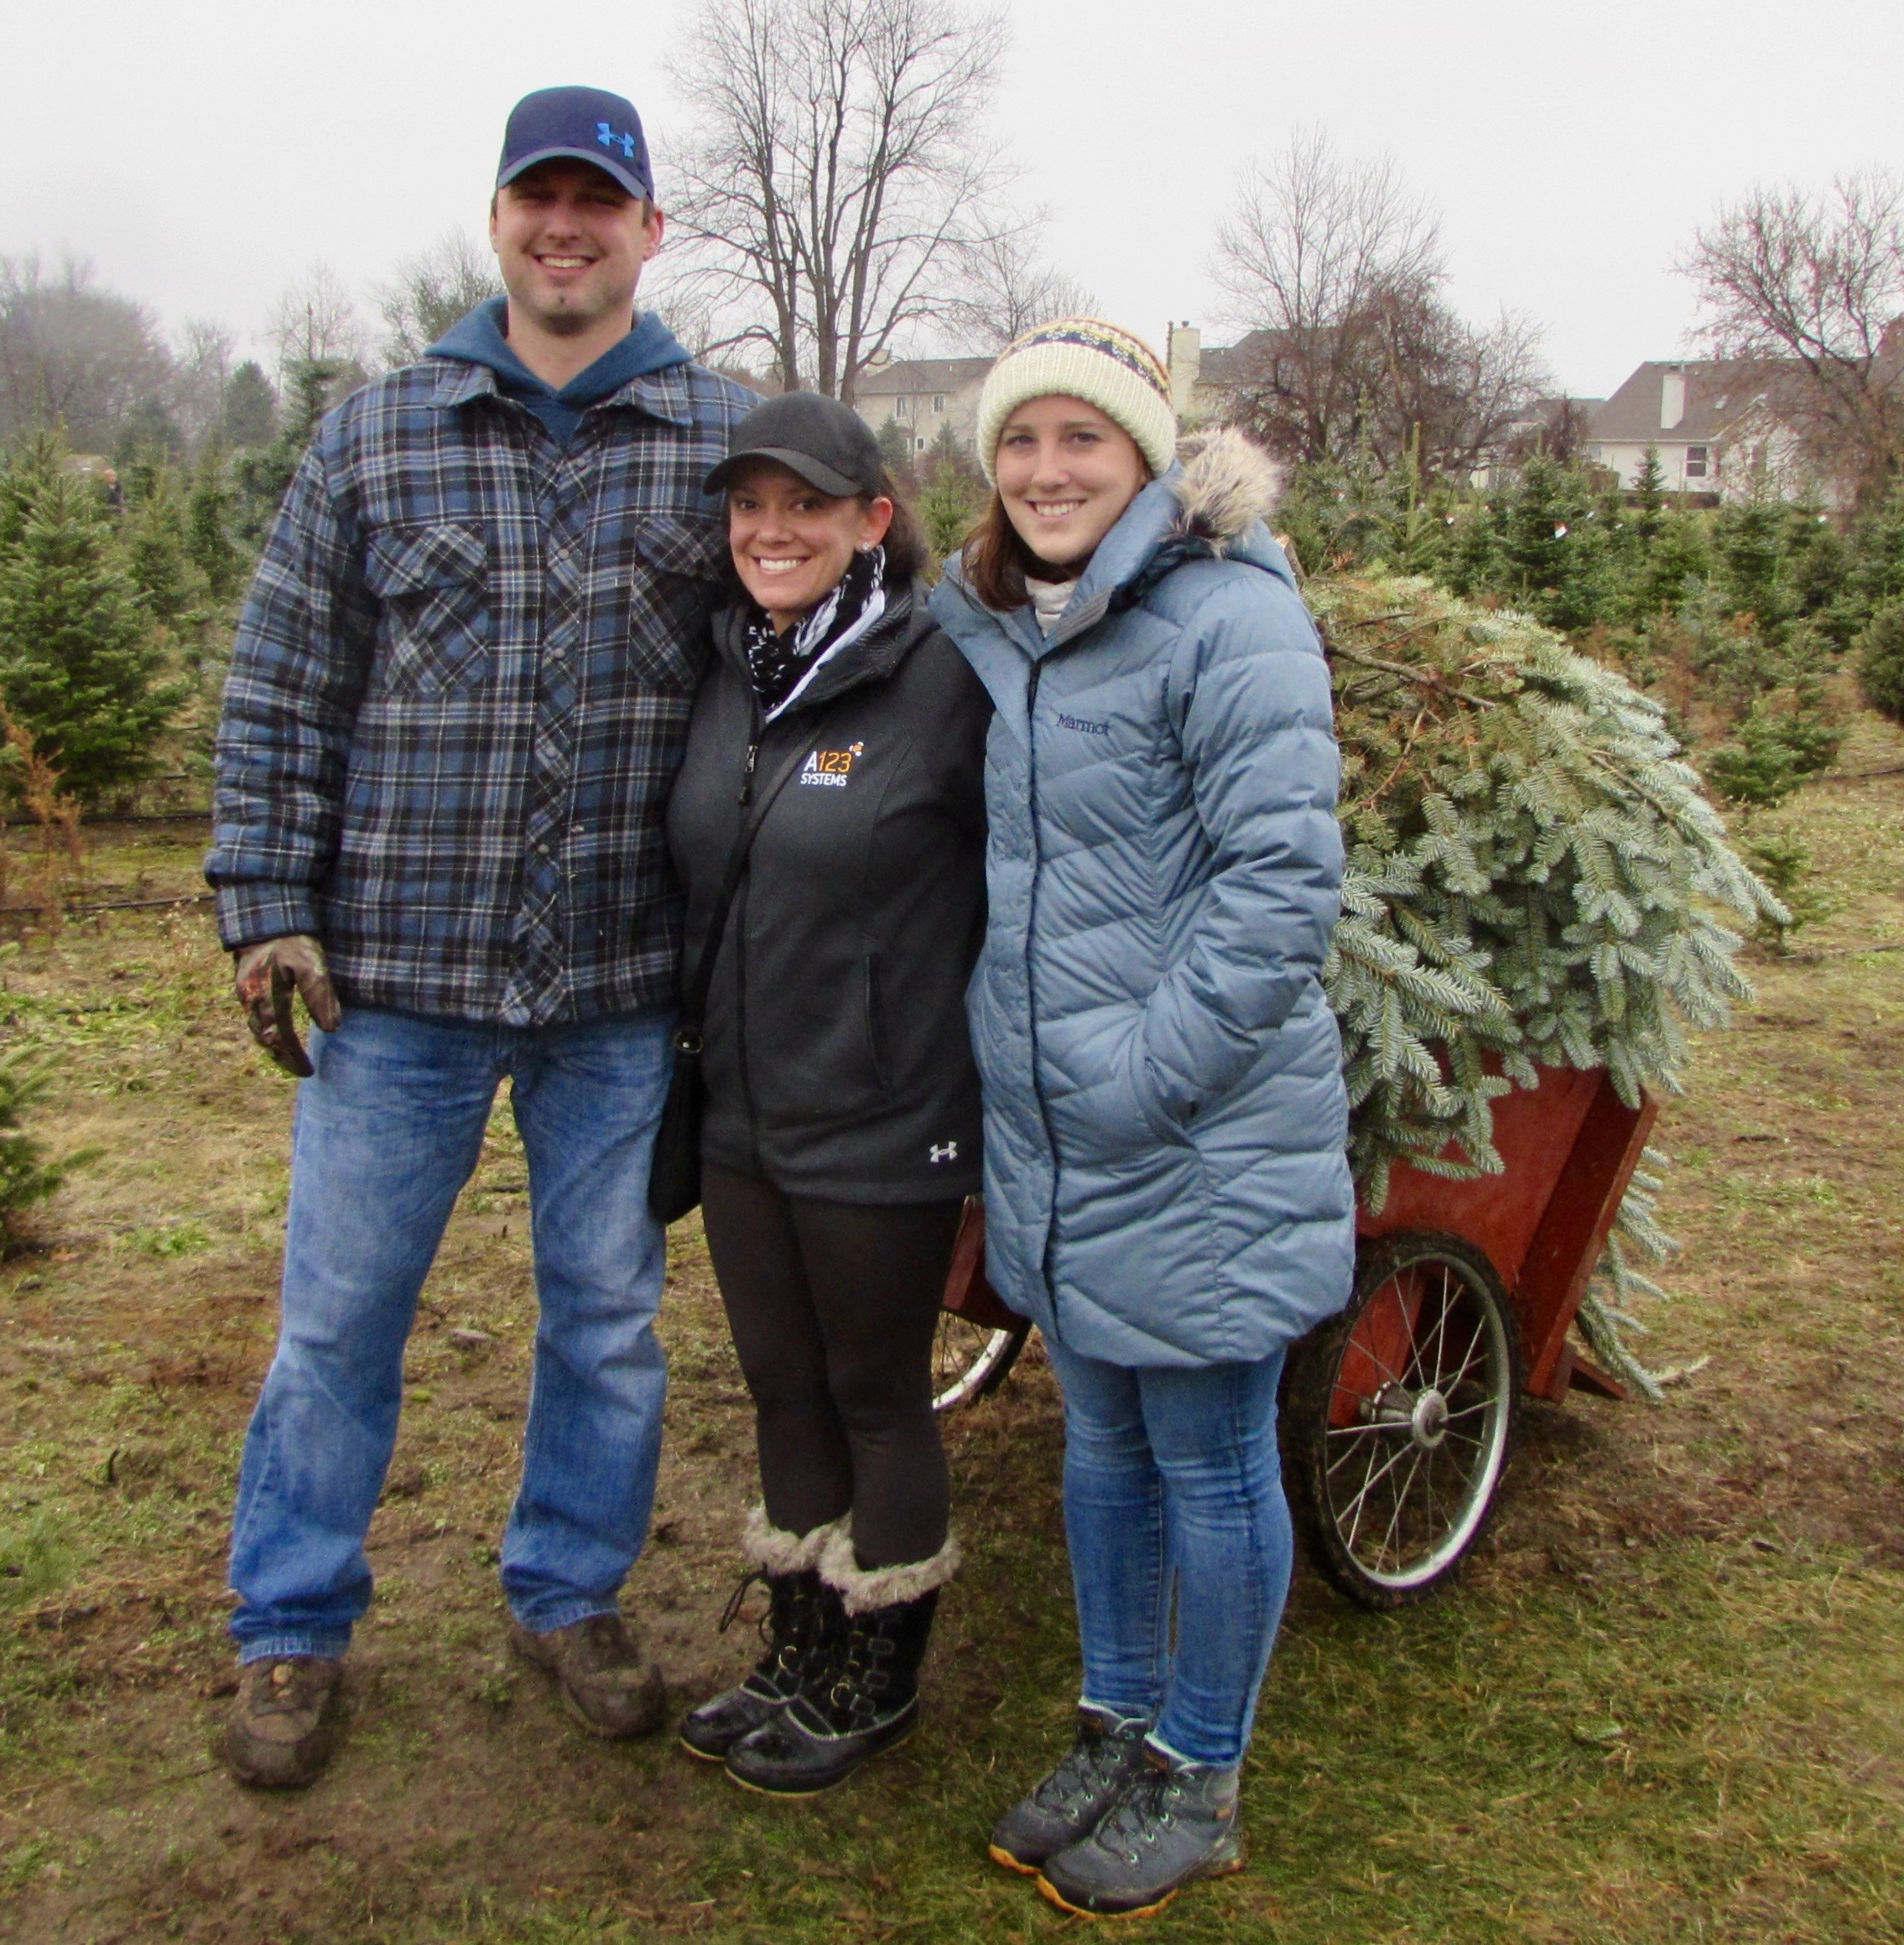 Candy Cane Christmas Tree Farm  Family tradition at Candy Cane Christmas Tree Farm